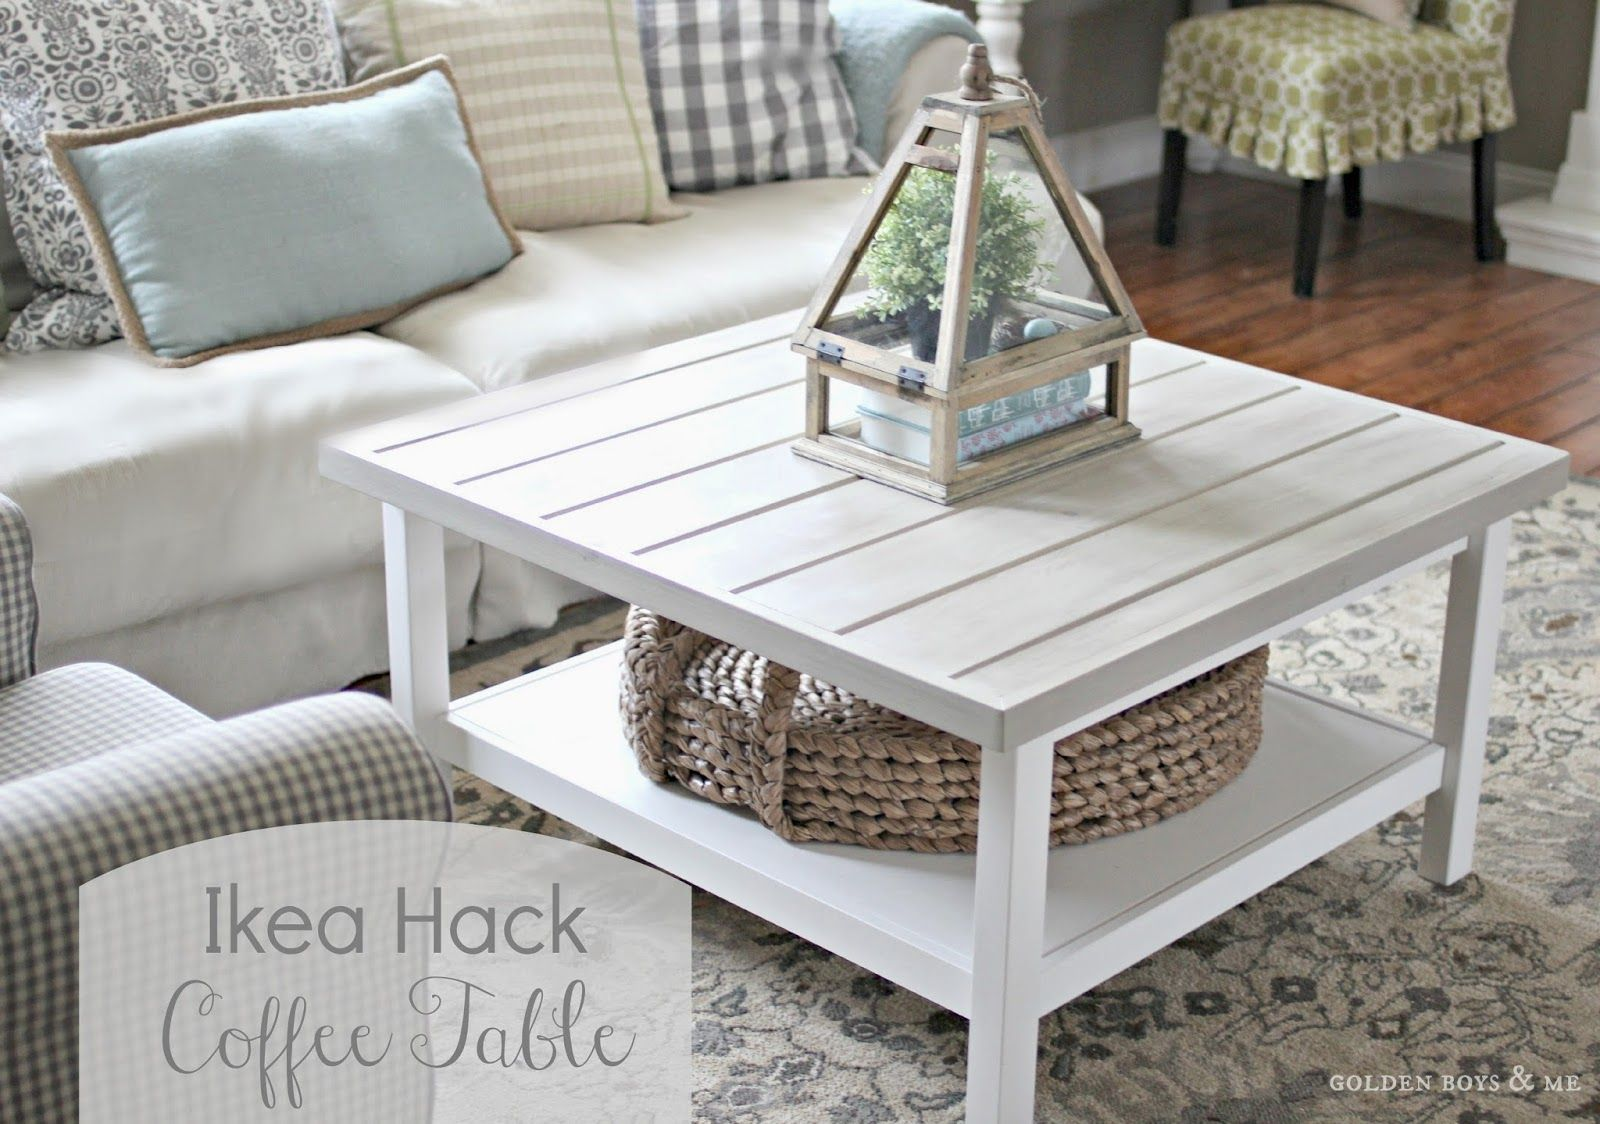 Coffee Table Ikea Hack Ikea Hemnes Coffee Table Ikea